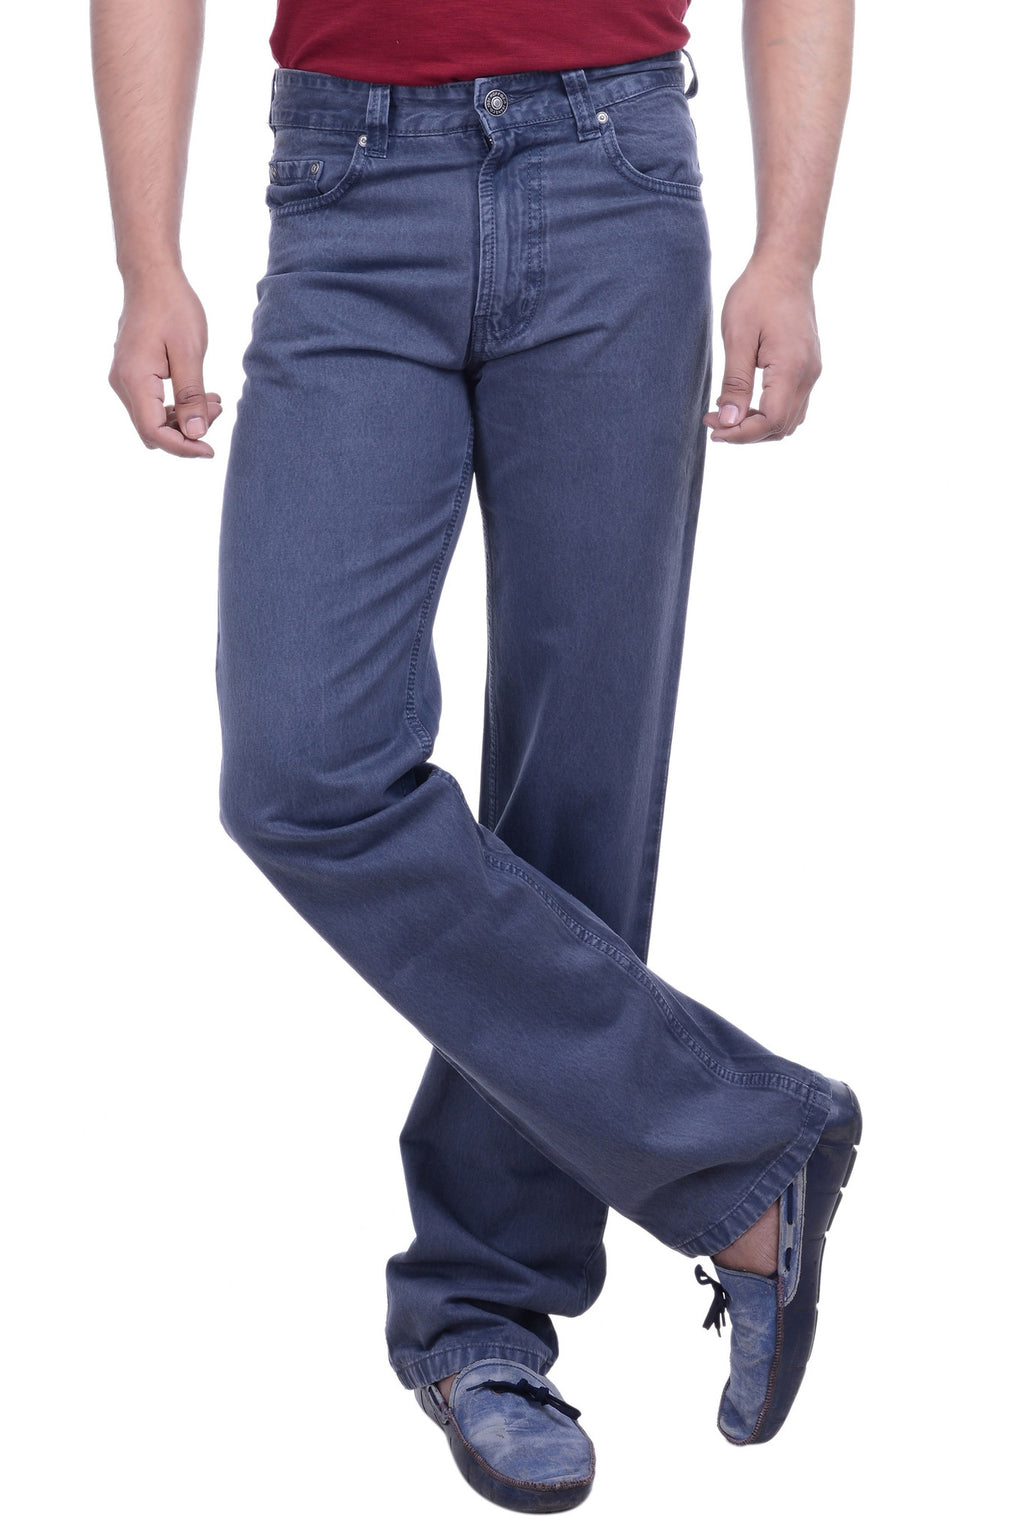 Hoffmen Regular Fit DEEP GREY  Men's Jeans SDG2107